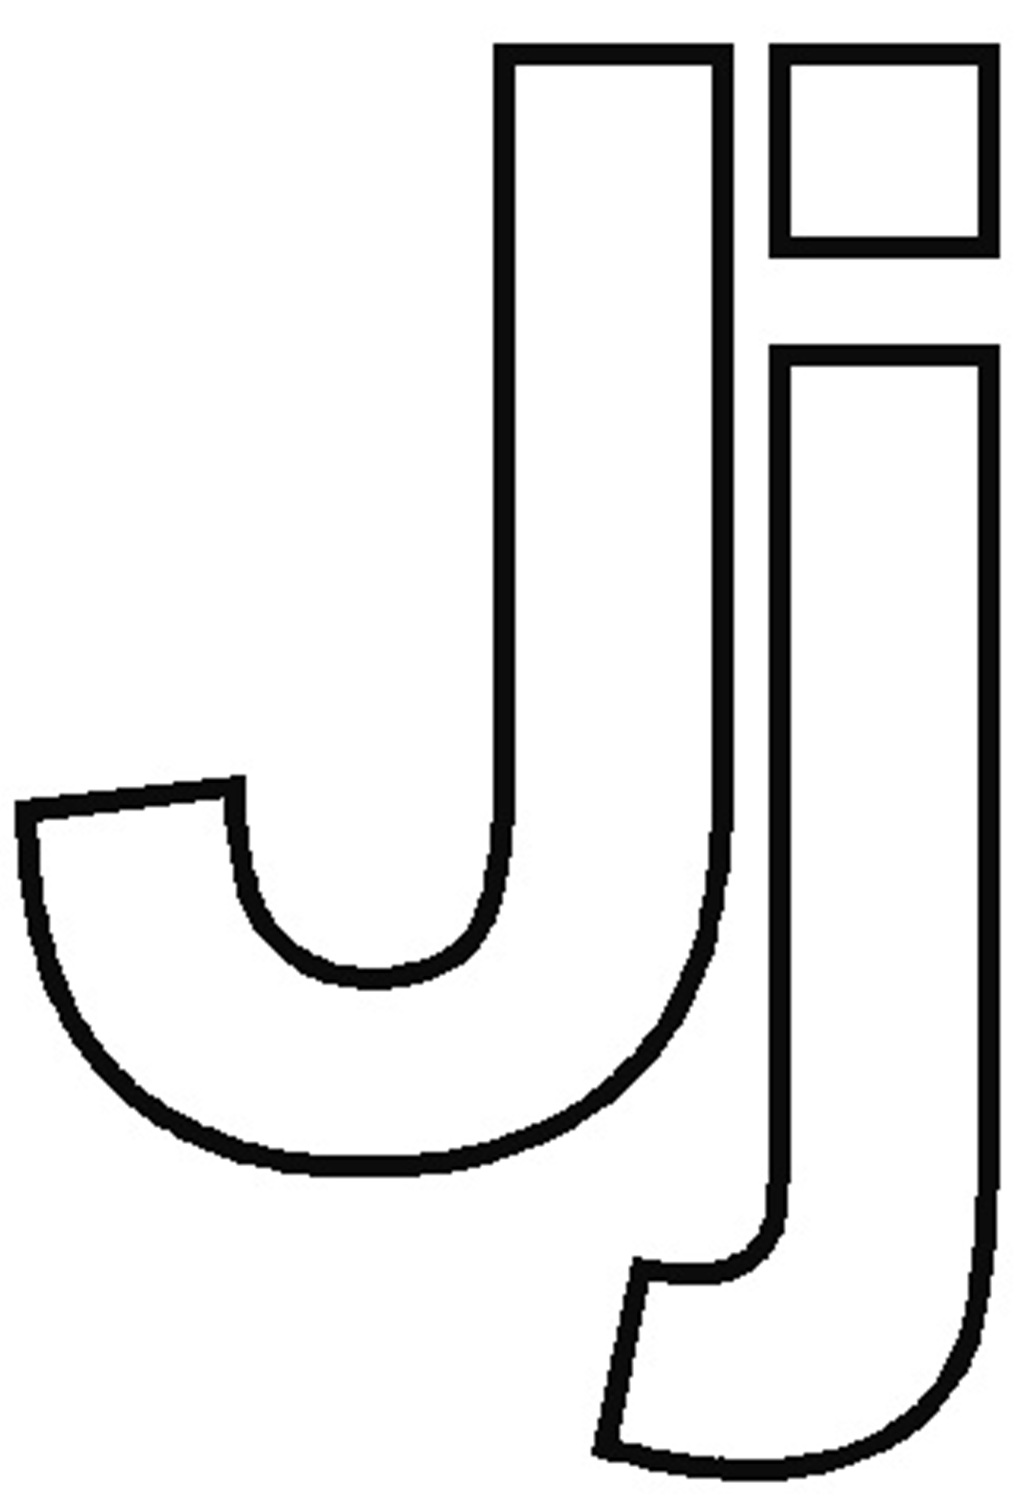 coloring letter j letter j coloring pages to download and print for free letter coloring j